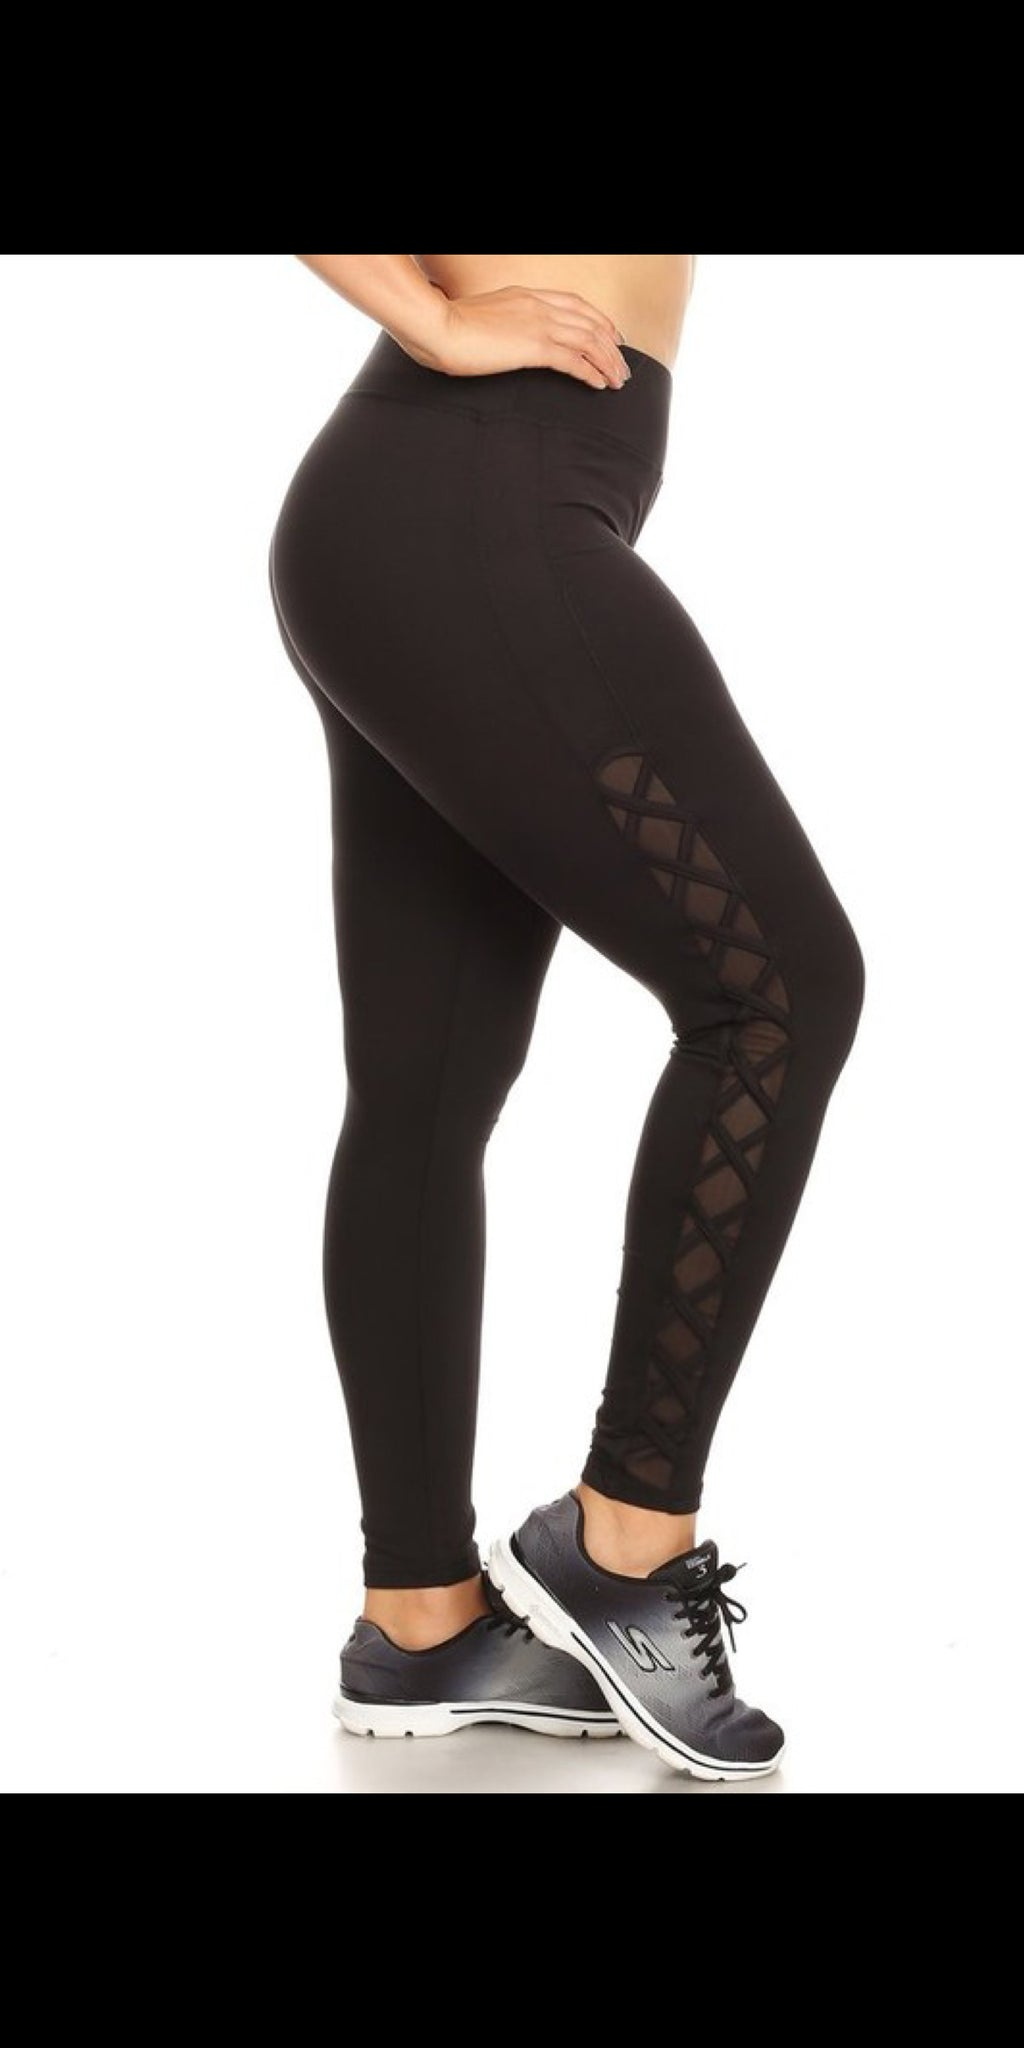 The Spade Black Athletic Leggings - Also in Plus Size